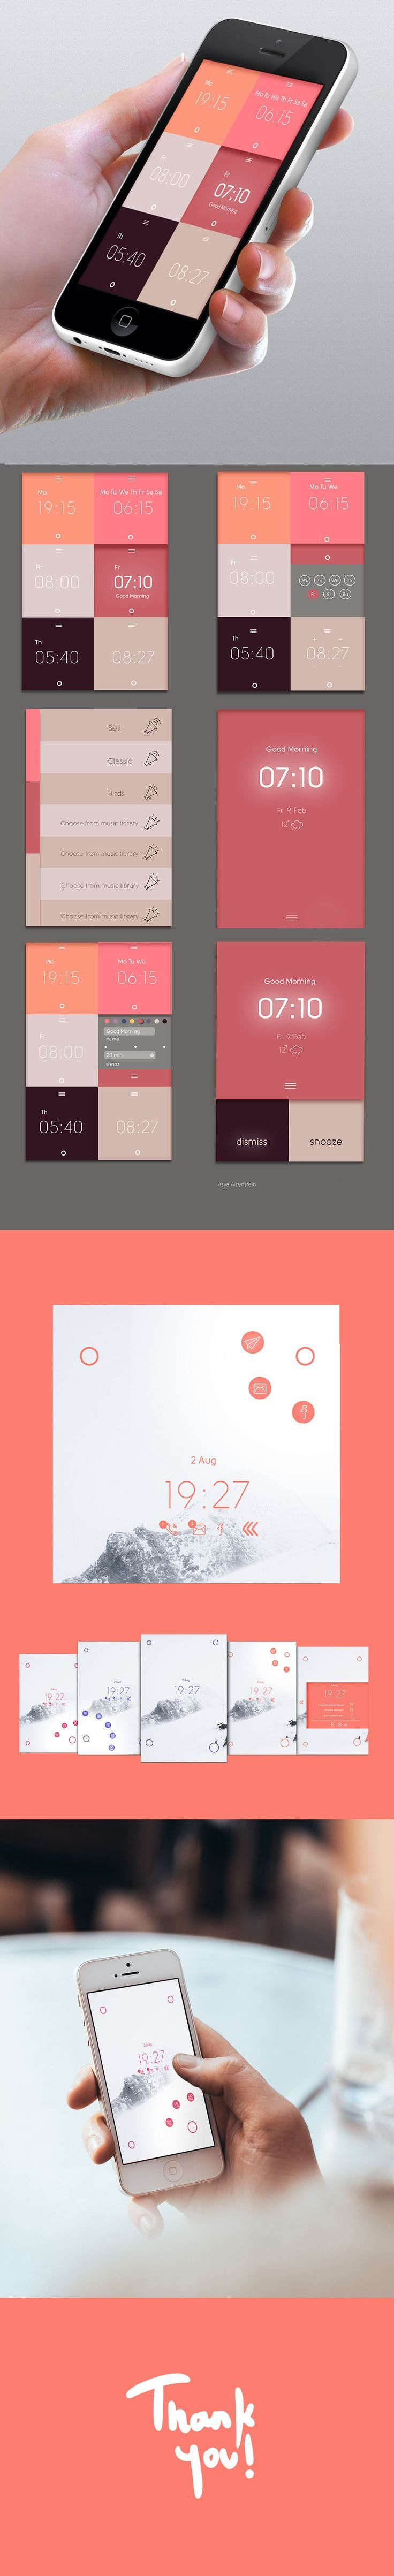 Weekly alarm clock app on Behance: